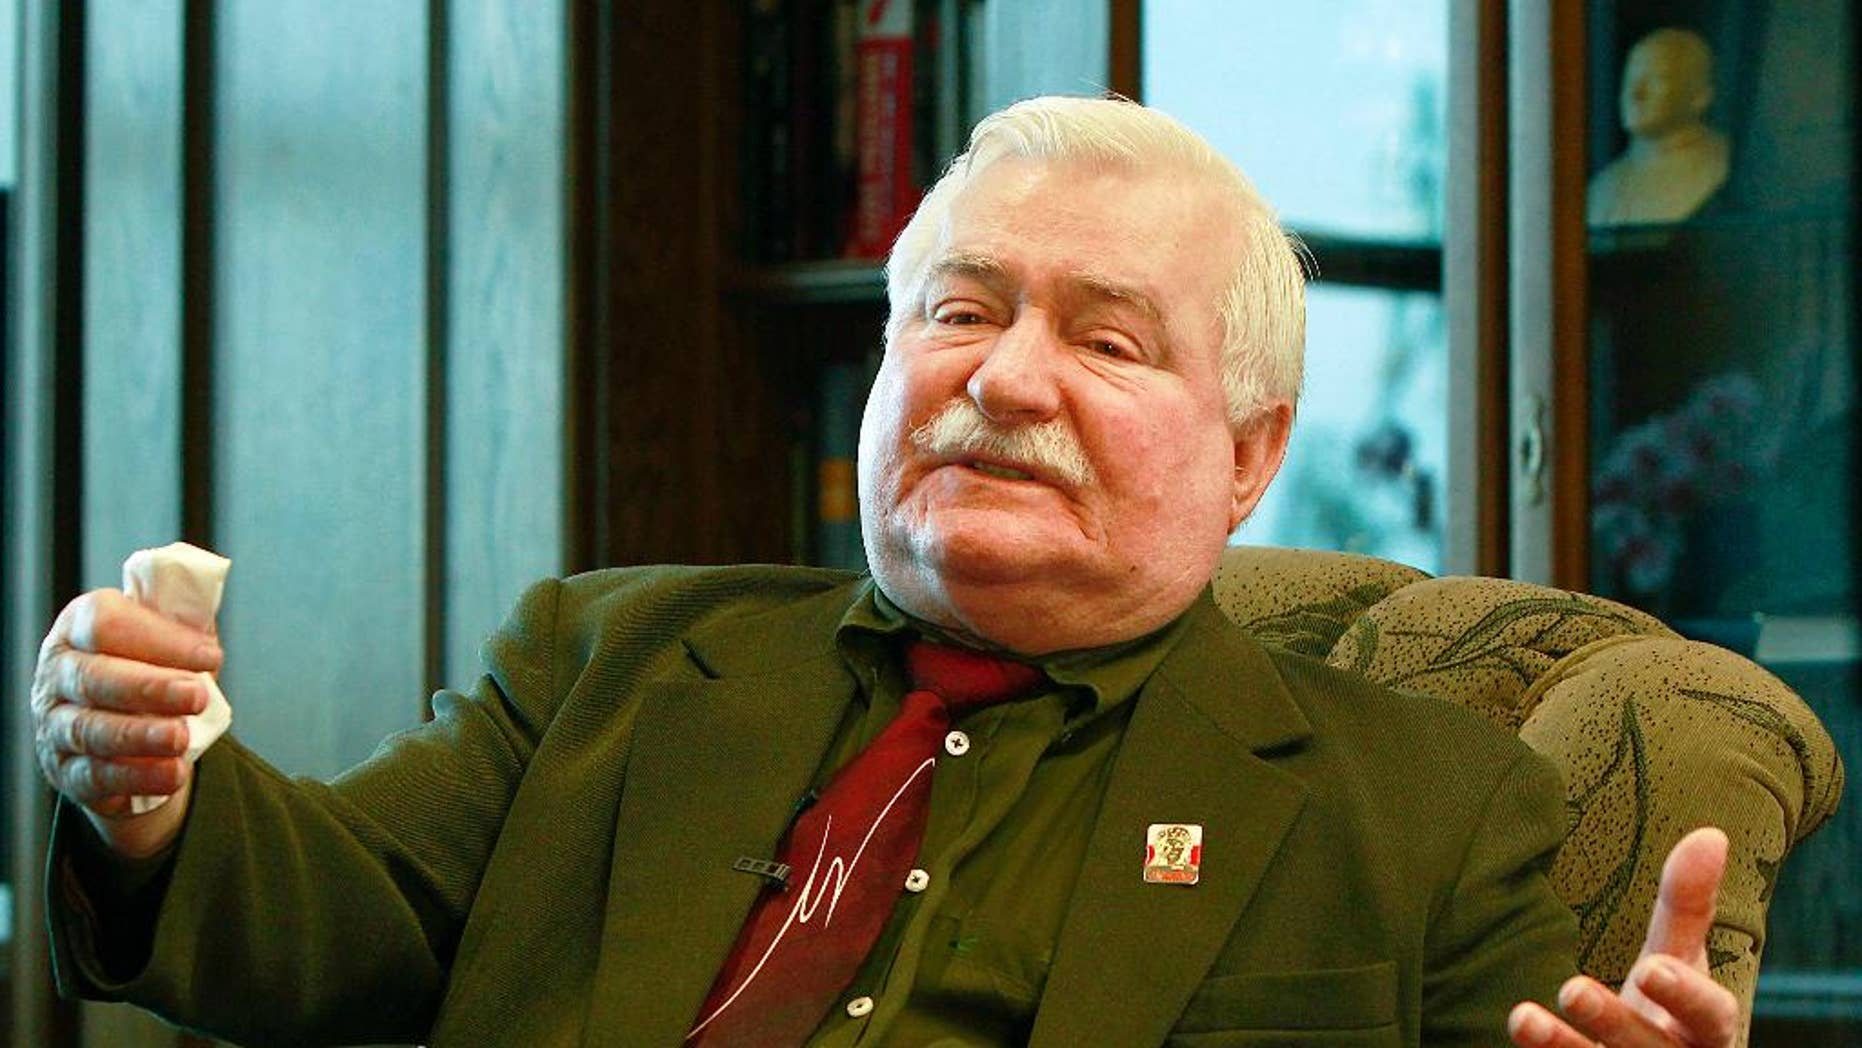 FILE- In this Wednesday, April 6, 2016 file photo, Poland's former president and legendary Solidarity freedom movement founder Lech Walesa gestures during an exclusive interview with The Associated Press at his office at the European Solidarity Center in Gdansk, Poland. The son of former Polish president Lech Walesa said Thursday, Oct. 13, 2016, that his father, a longtime adversary of Poland's current leadership, is being stripped of state protection when he travels abroad. (AP Photo/Czarek Sokolowski, File)